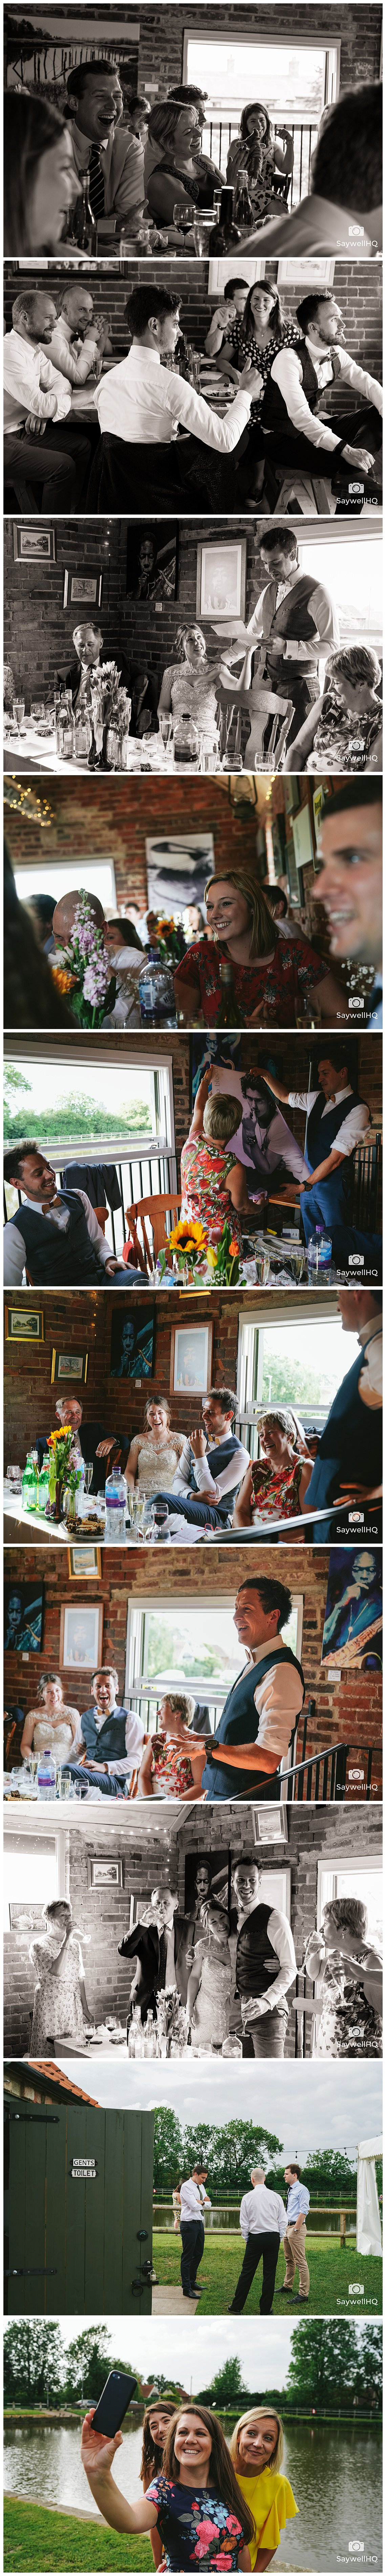 Humanist Wedding Photography at the The Old Wharf Tearooms in Leicester